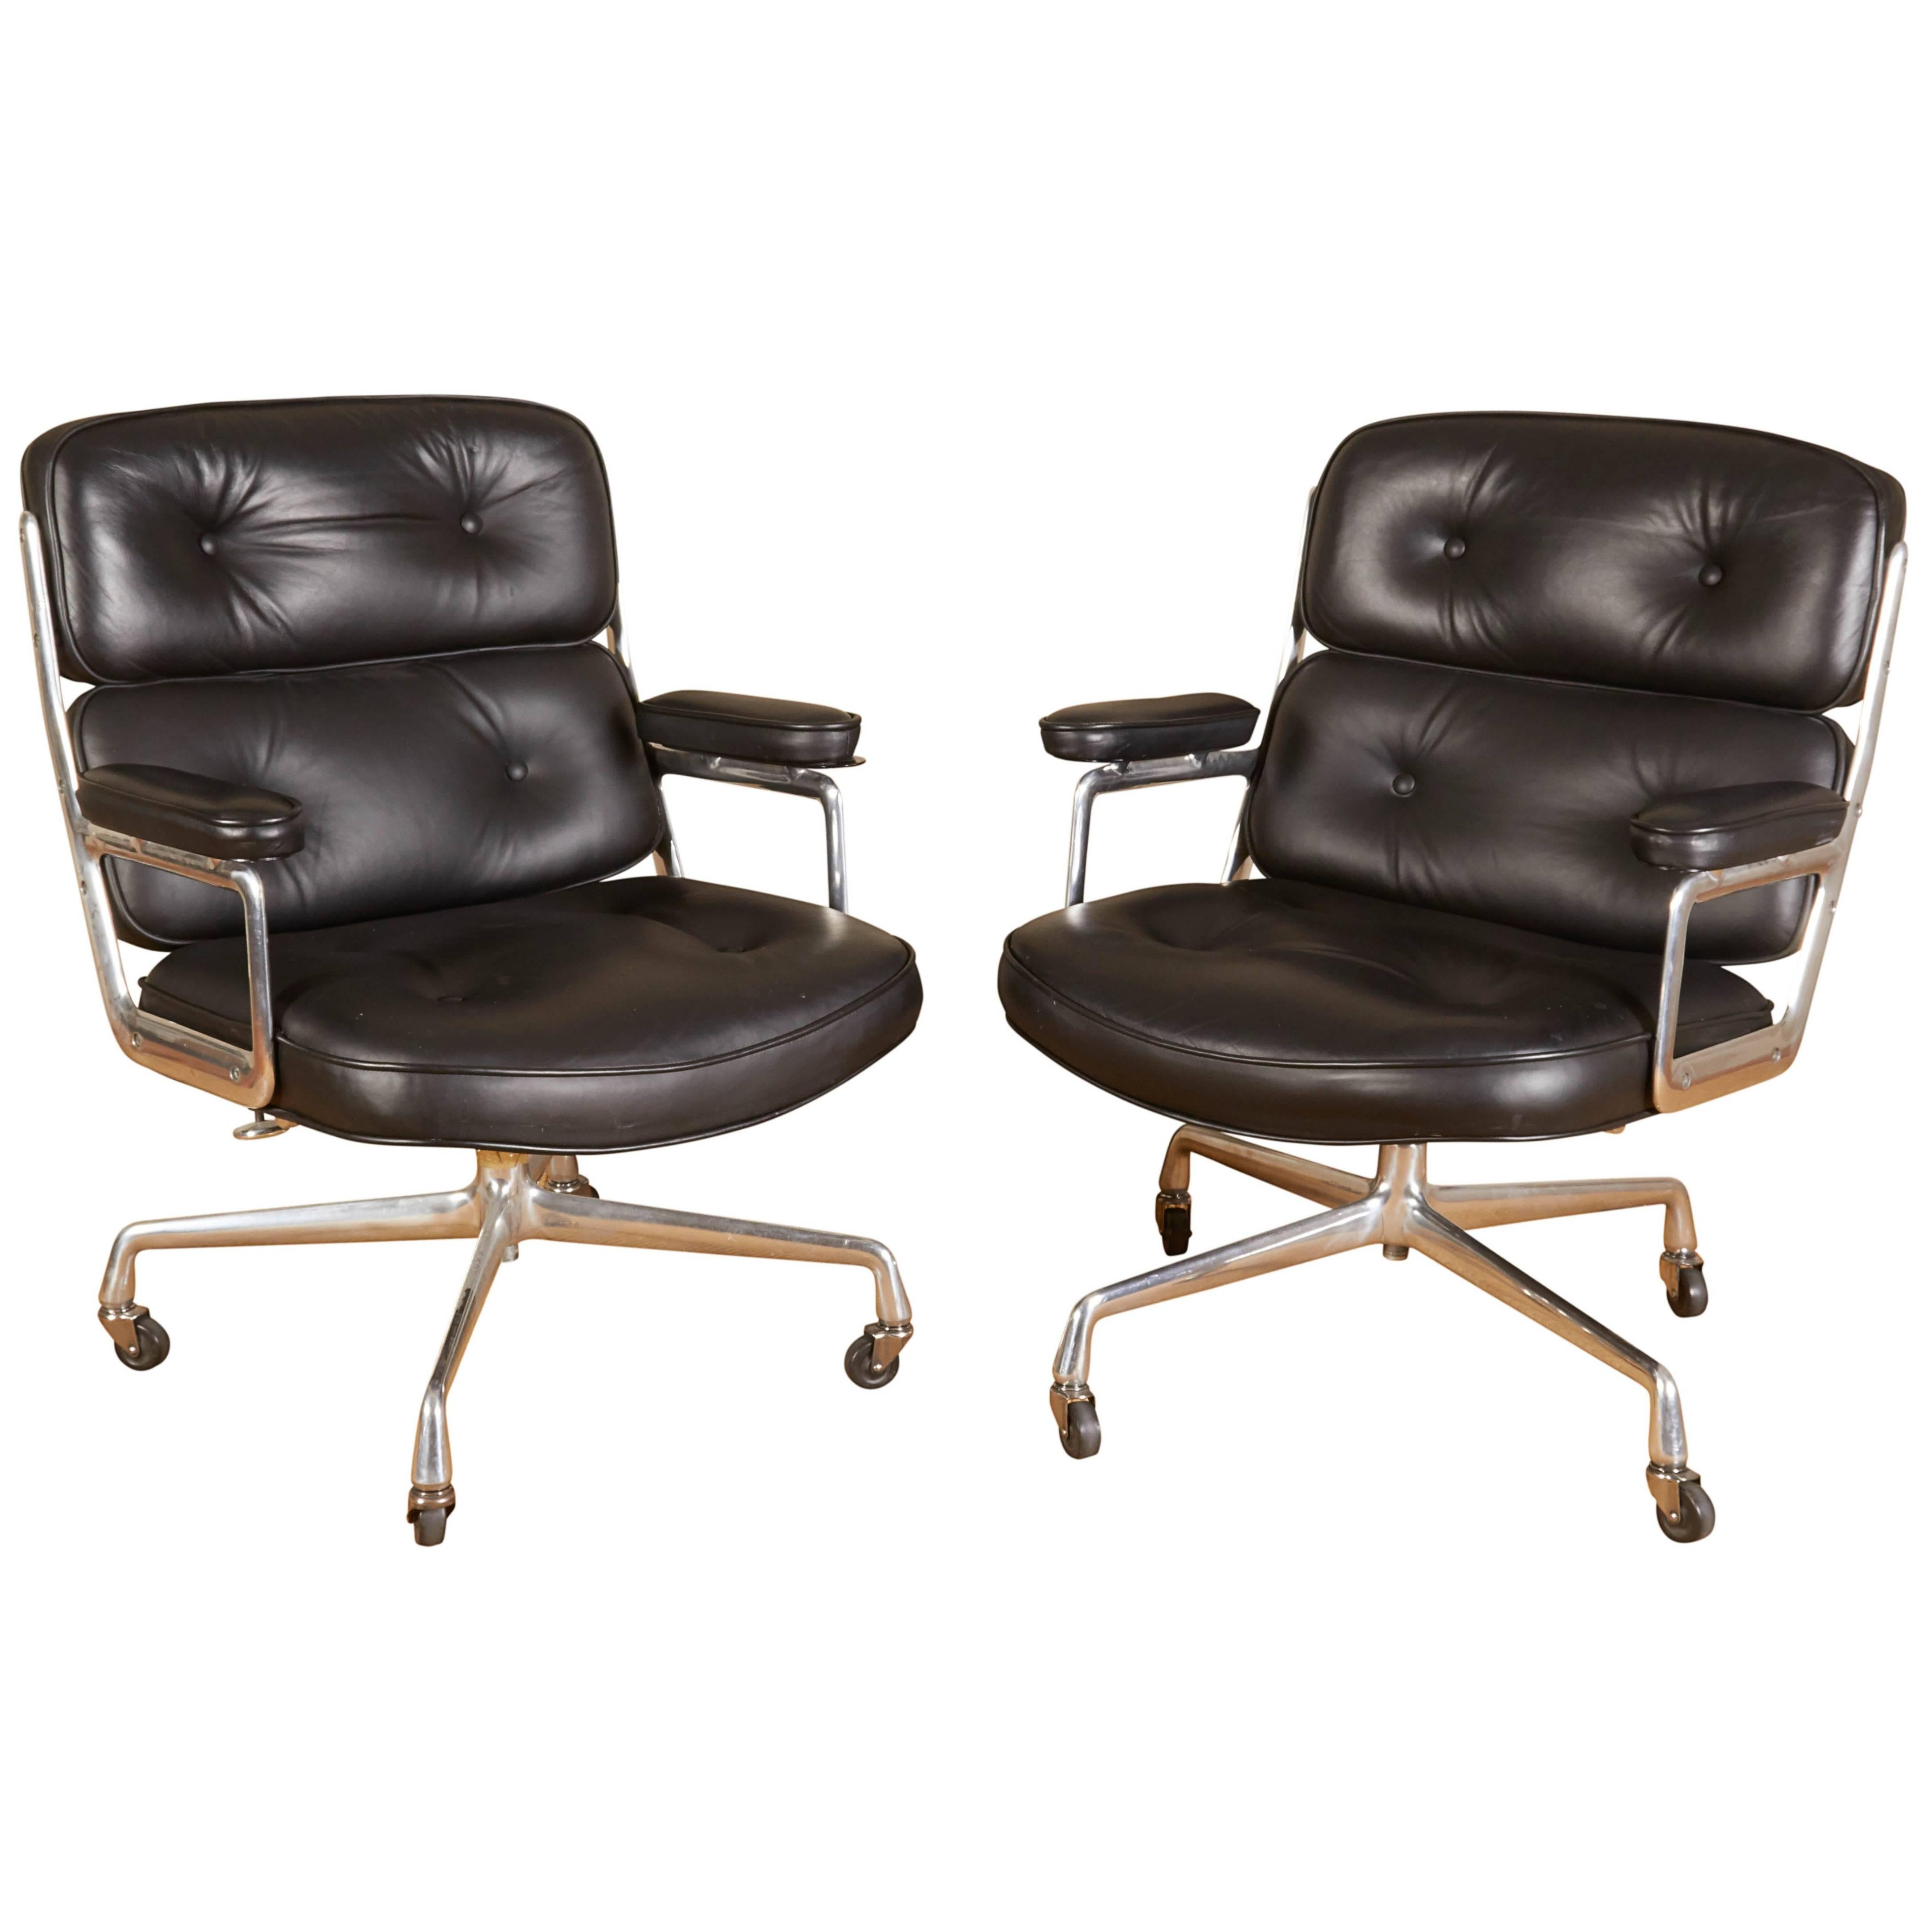 Eames TimeLife Executive Chair for Herman Miller at 1stdibs